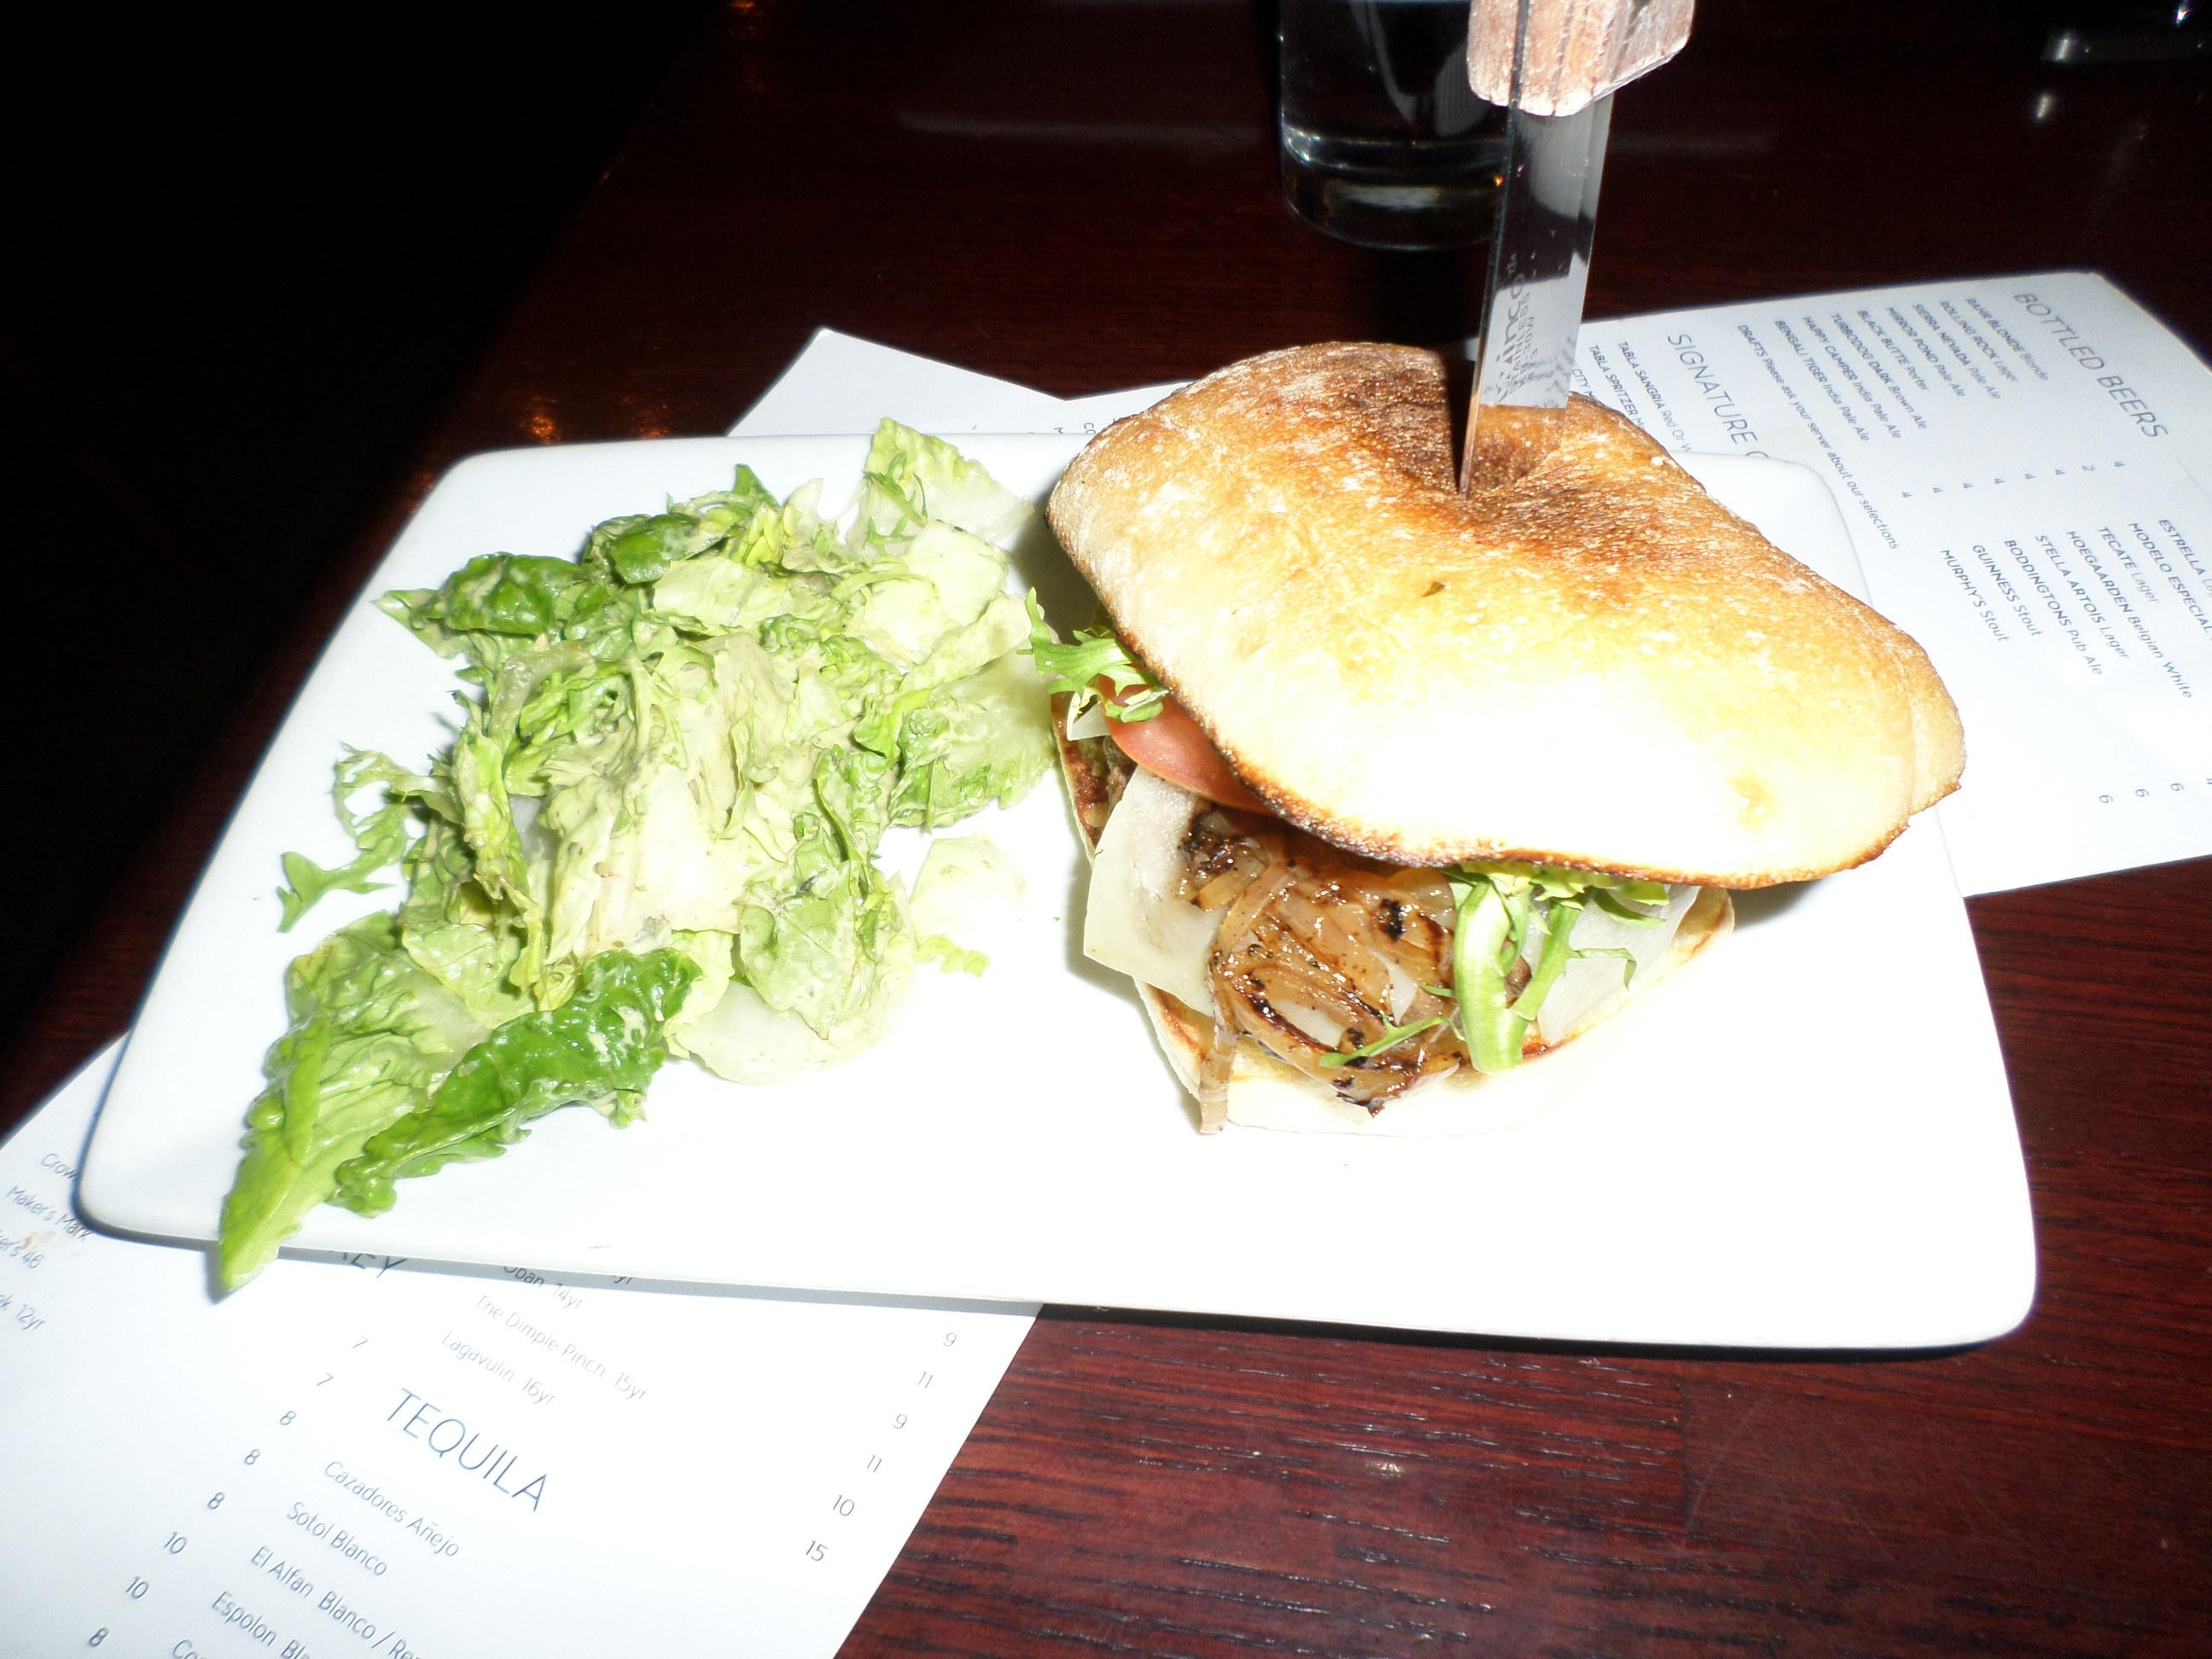 Tabla Restaurant has a great burger for $12. Cooked well without being burnt on the outsid